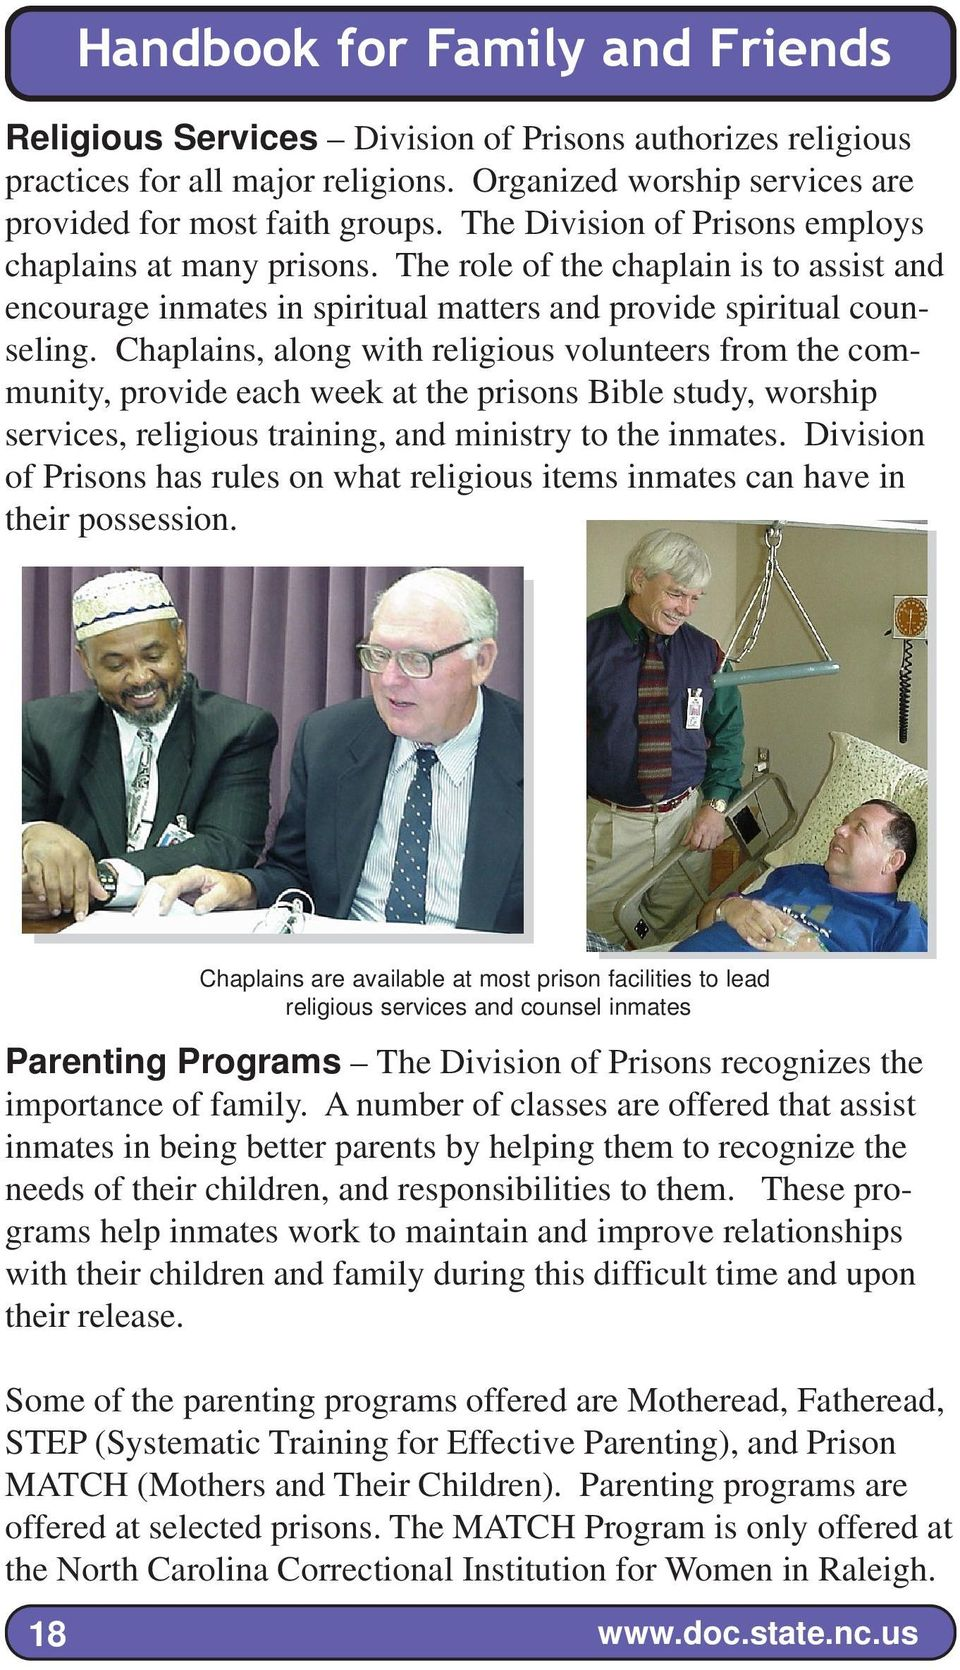 Chaplains, along with religious volunteers from the community, provide each week at the prisons Bible study, worship services, religious training, and ministry to the inmates.